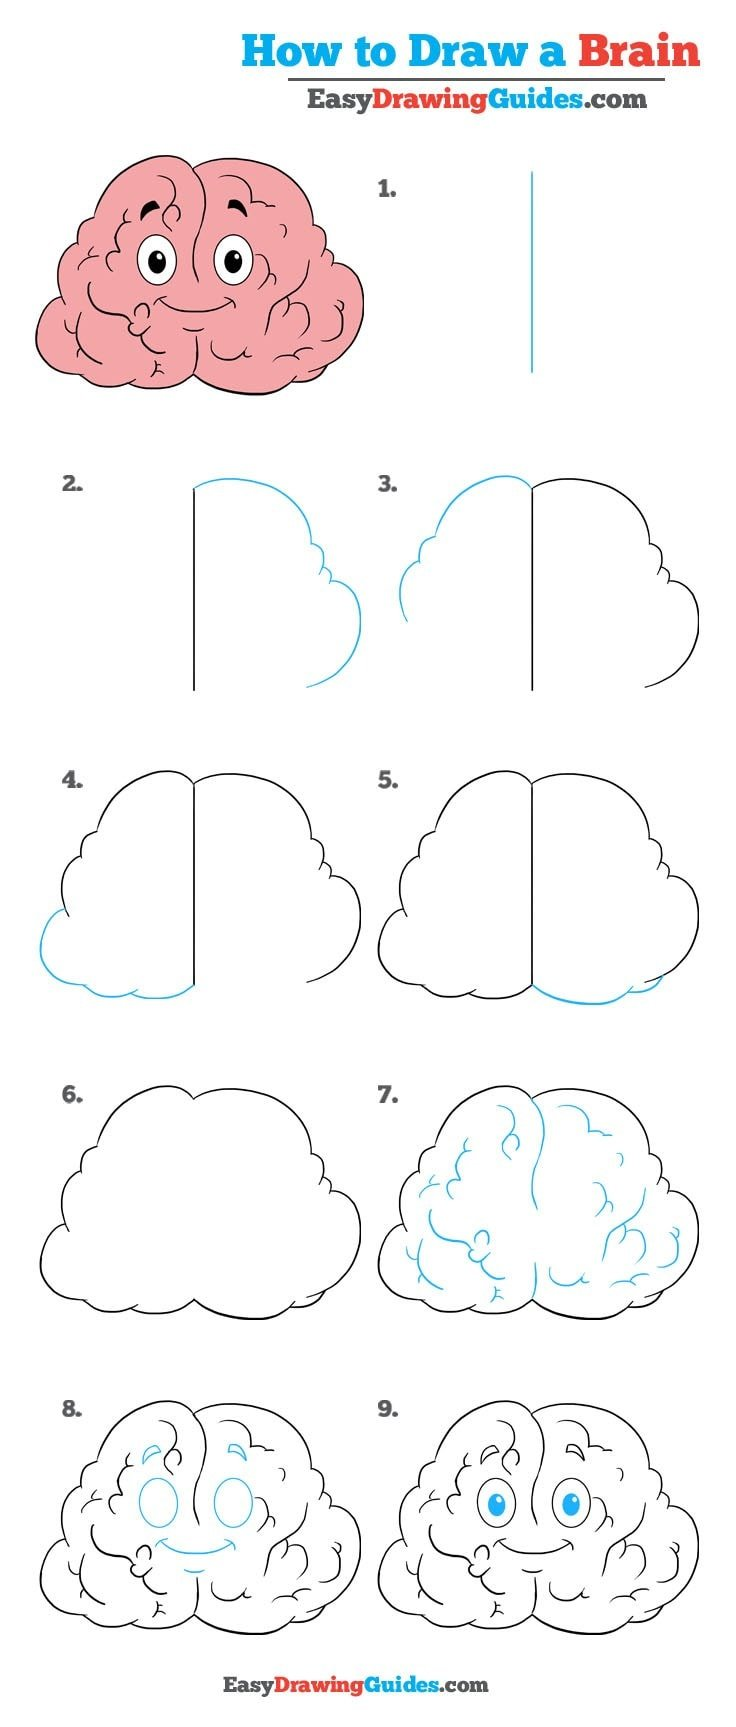 How to Draw a Brain - Really Easy Drawing Tutorial